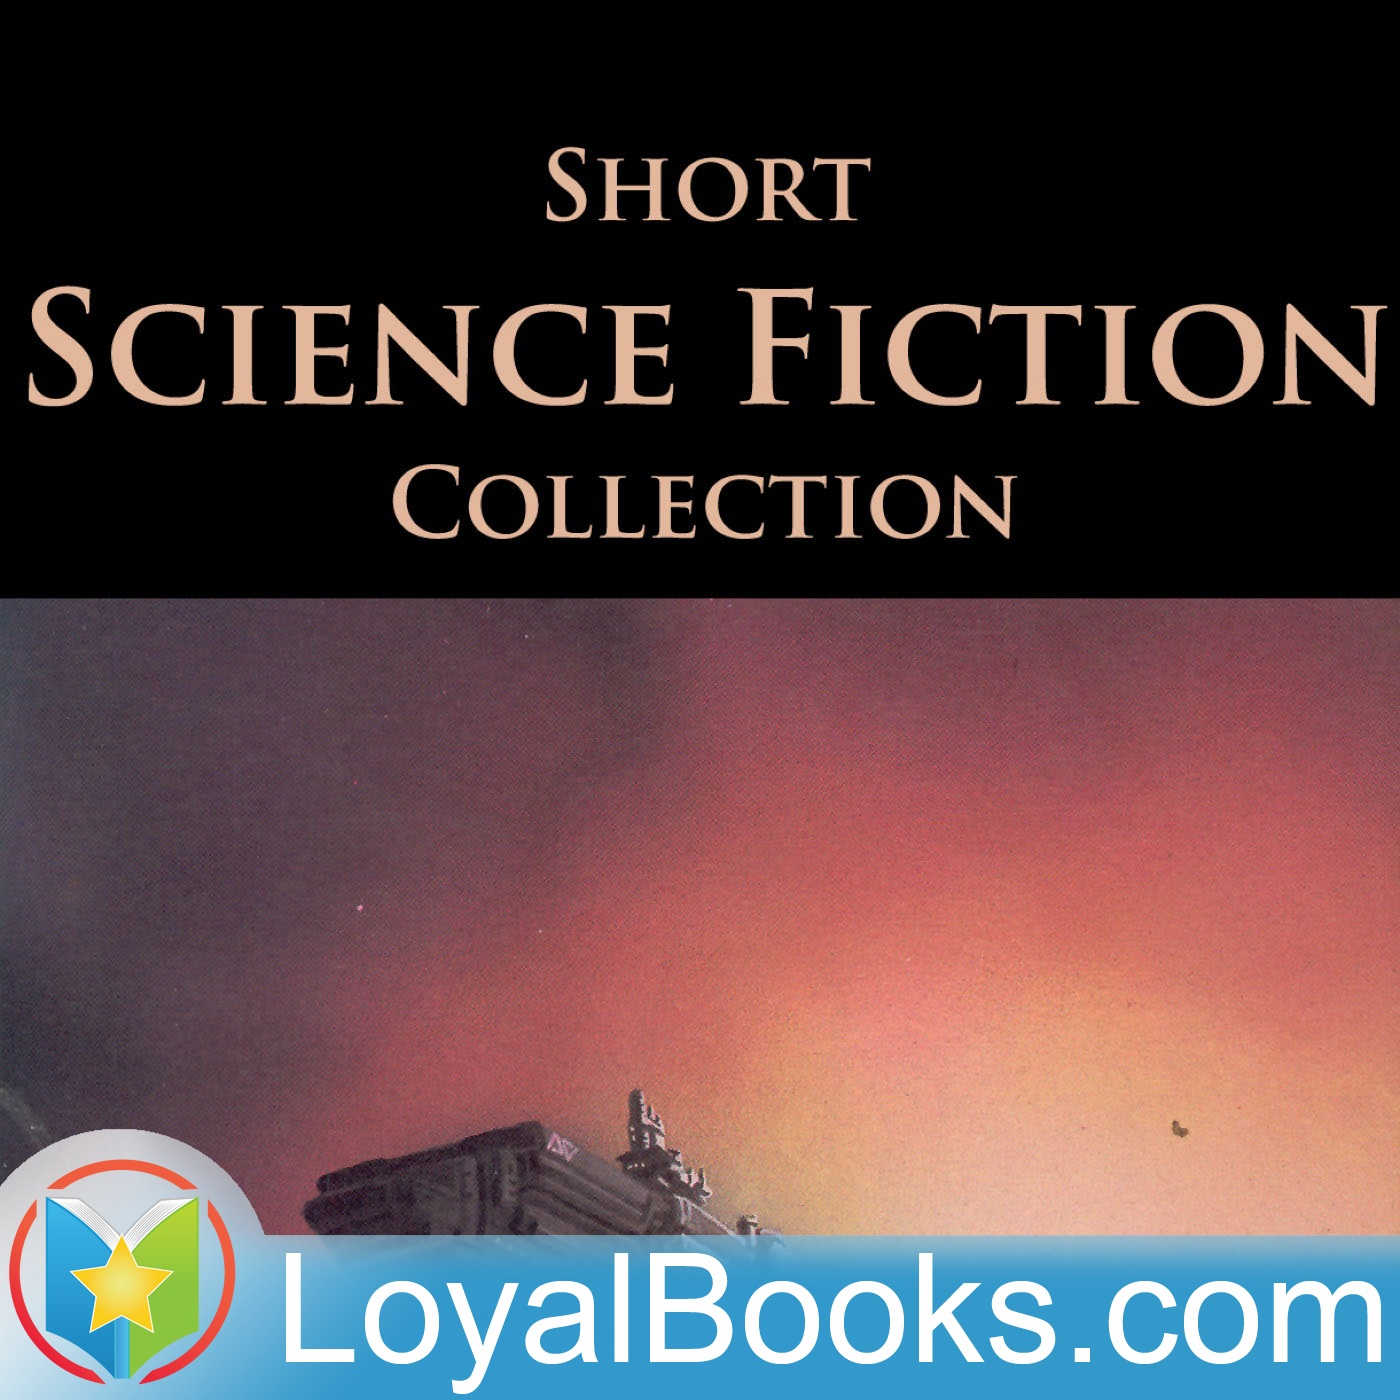 <![CDATA[Short Science Fiction Collection by Various]]>